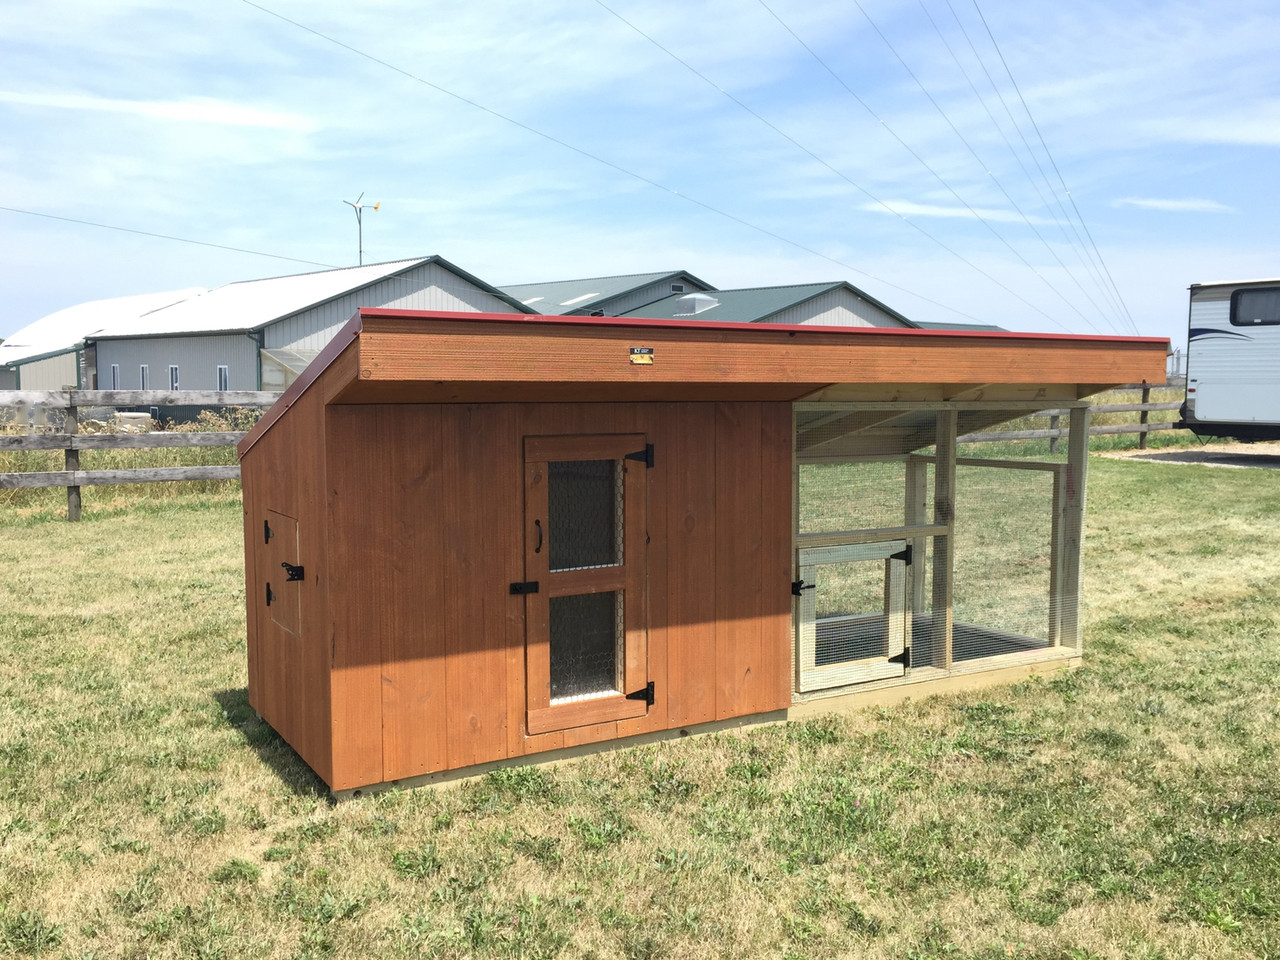 Kt Chicken Coop W Shed Roof Kauffman Lawn Furniture